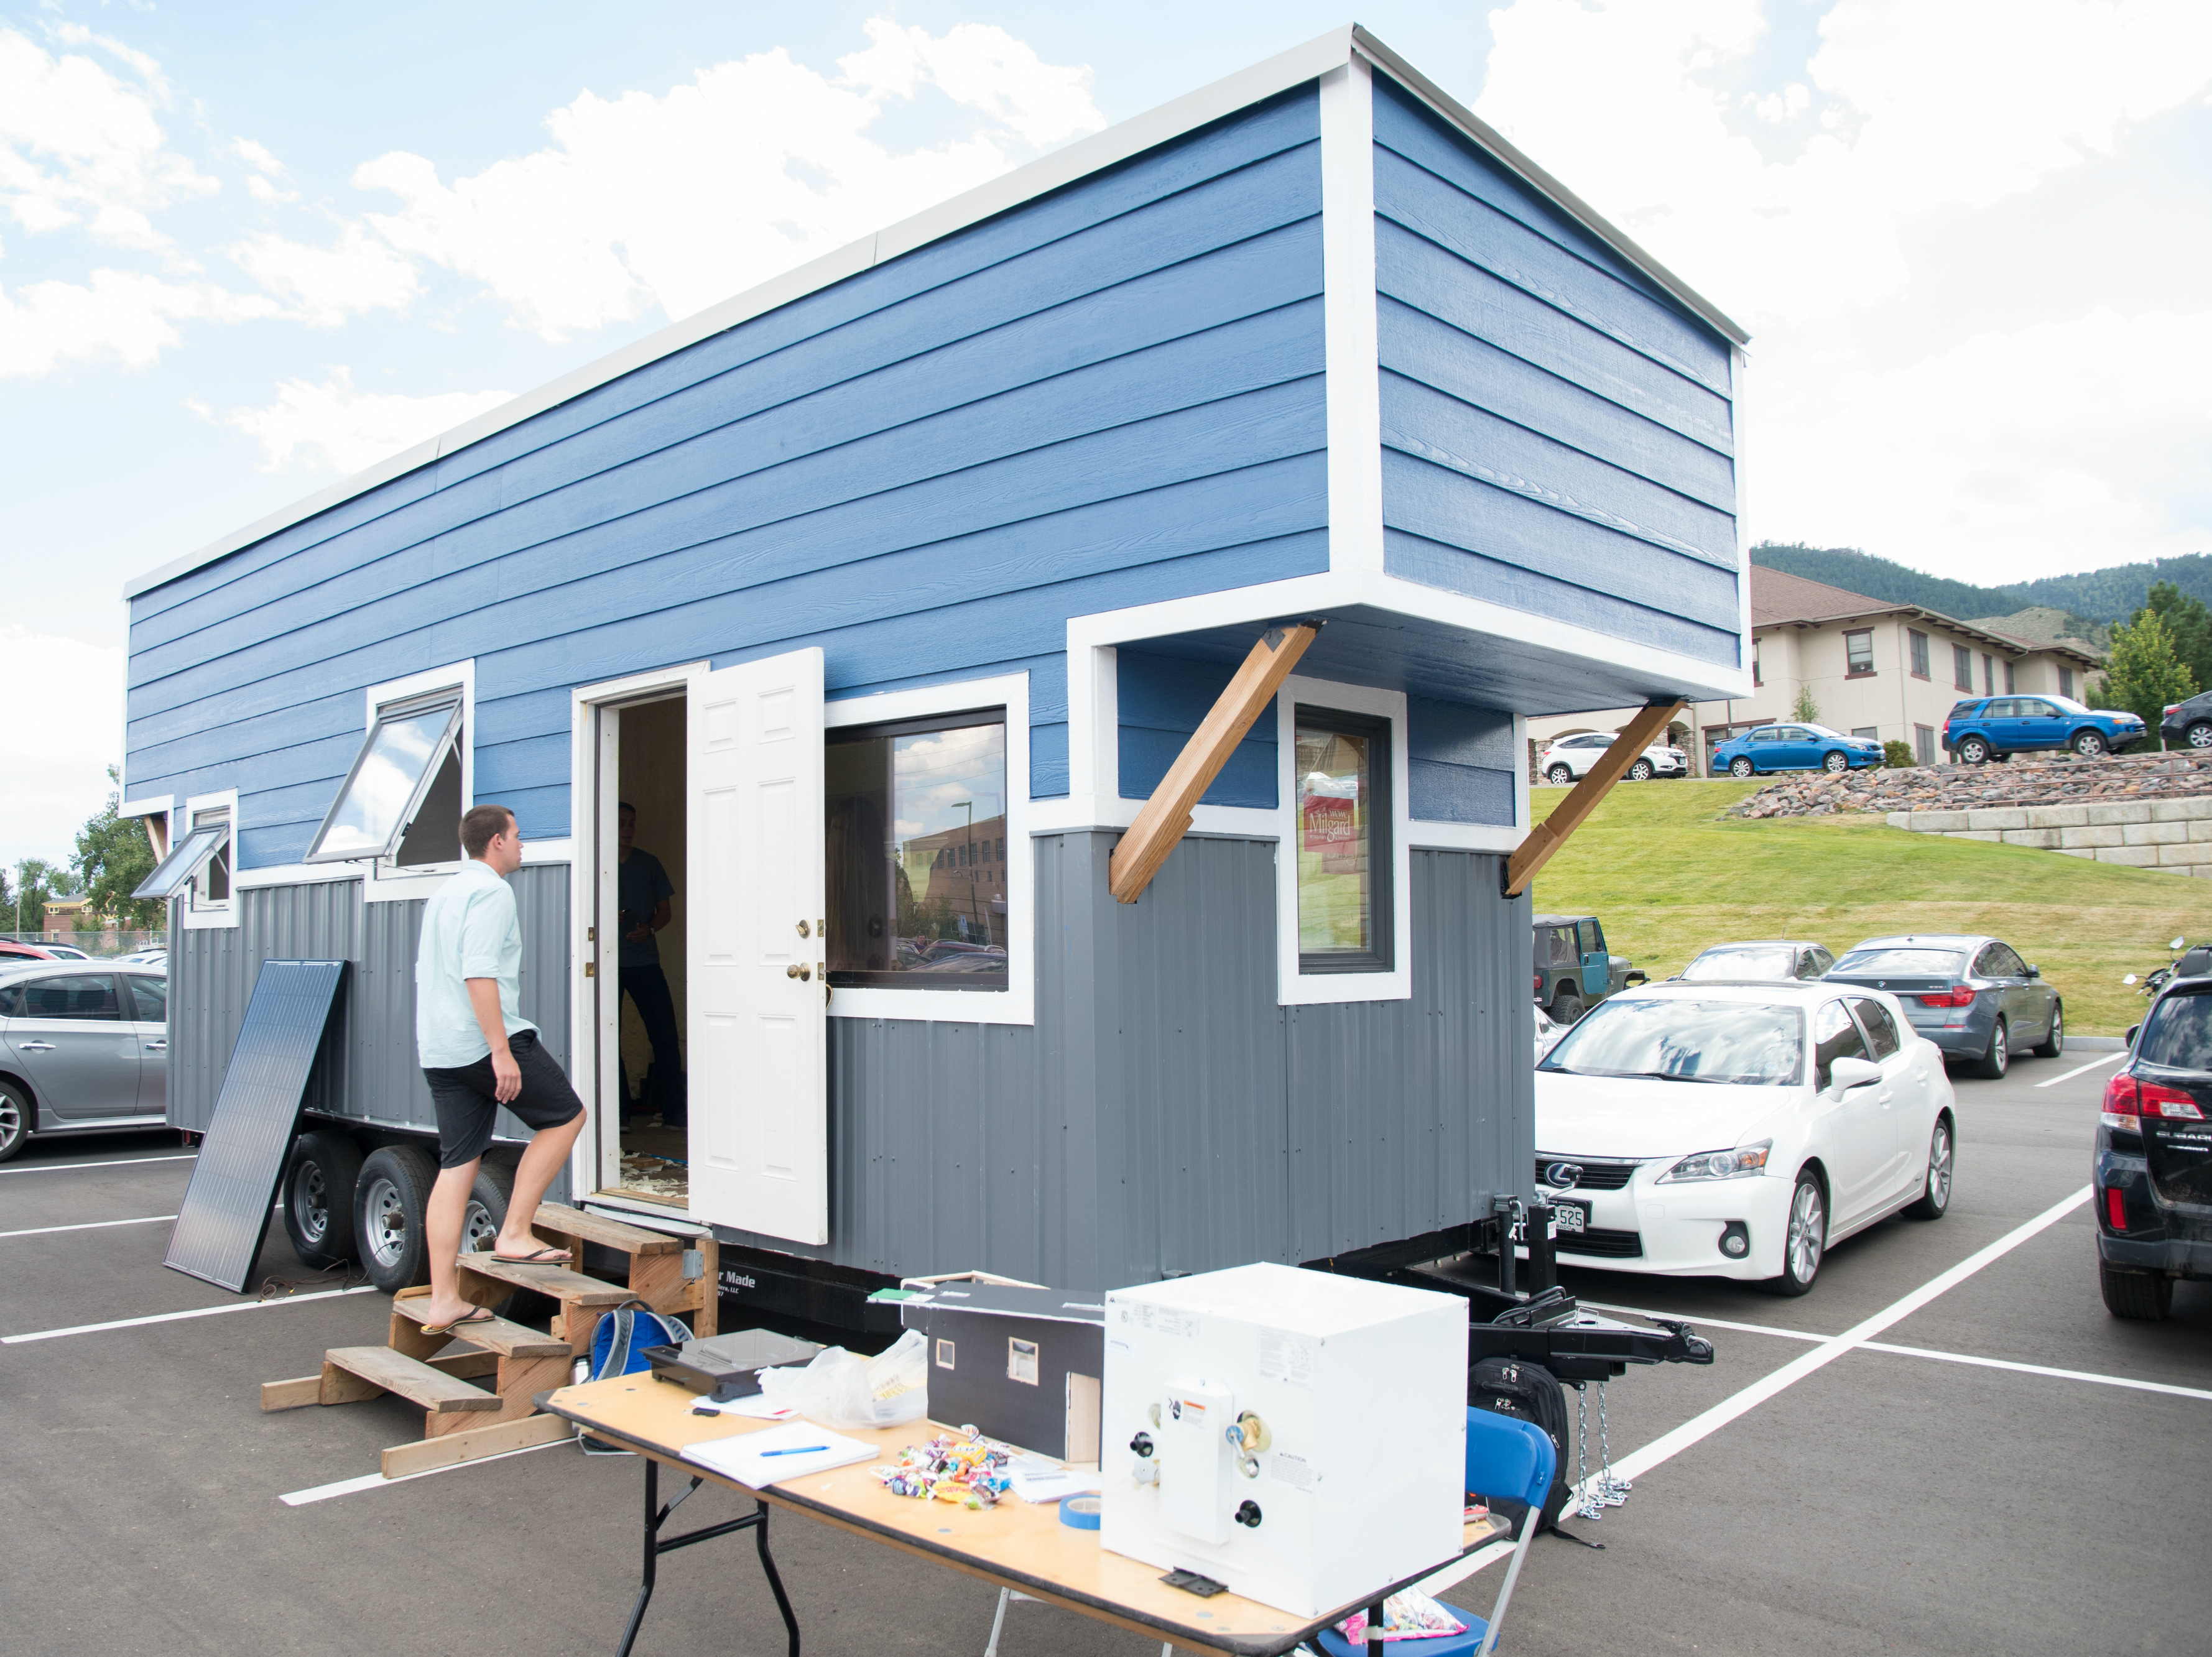 Mines Tiny House at the 2017 Celebration of Mines event